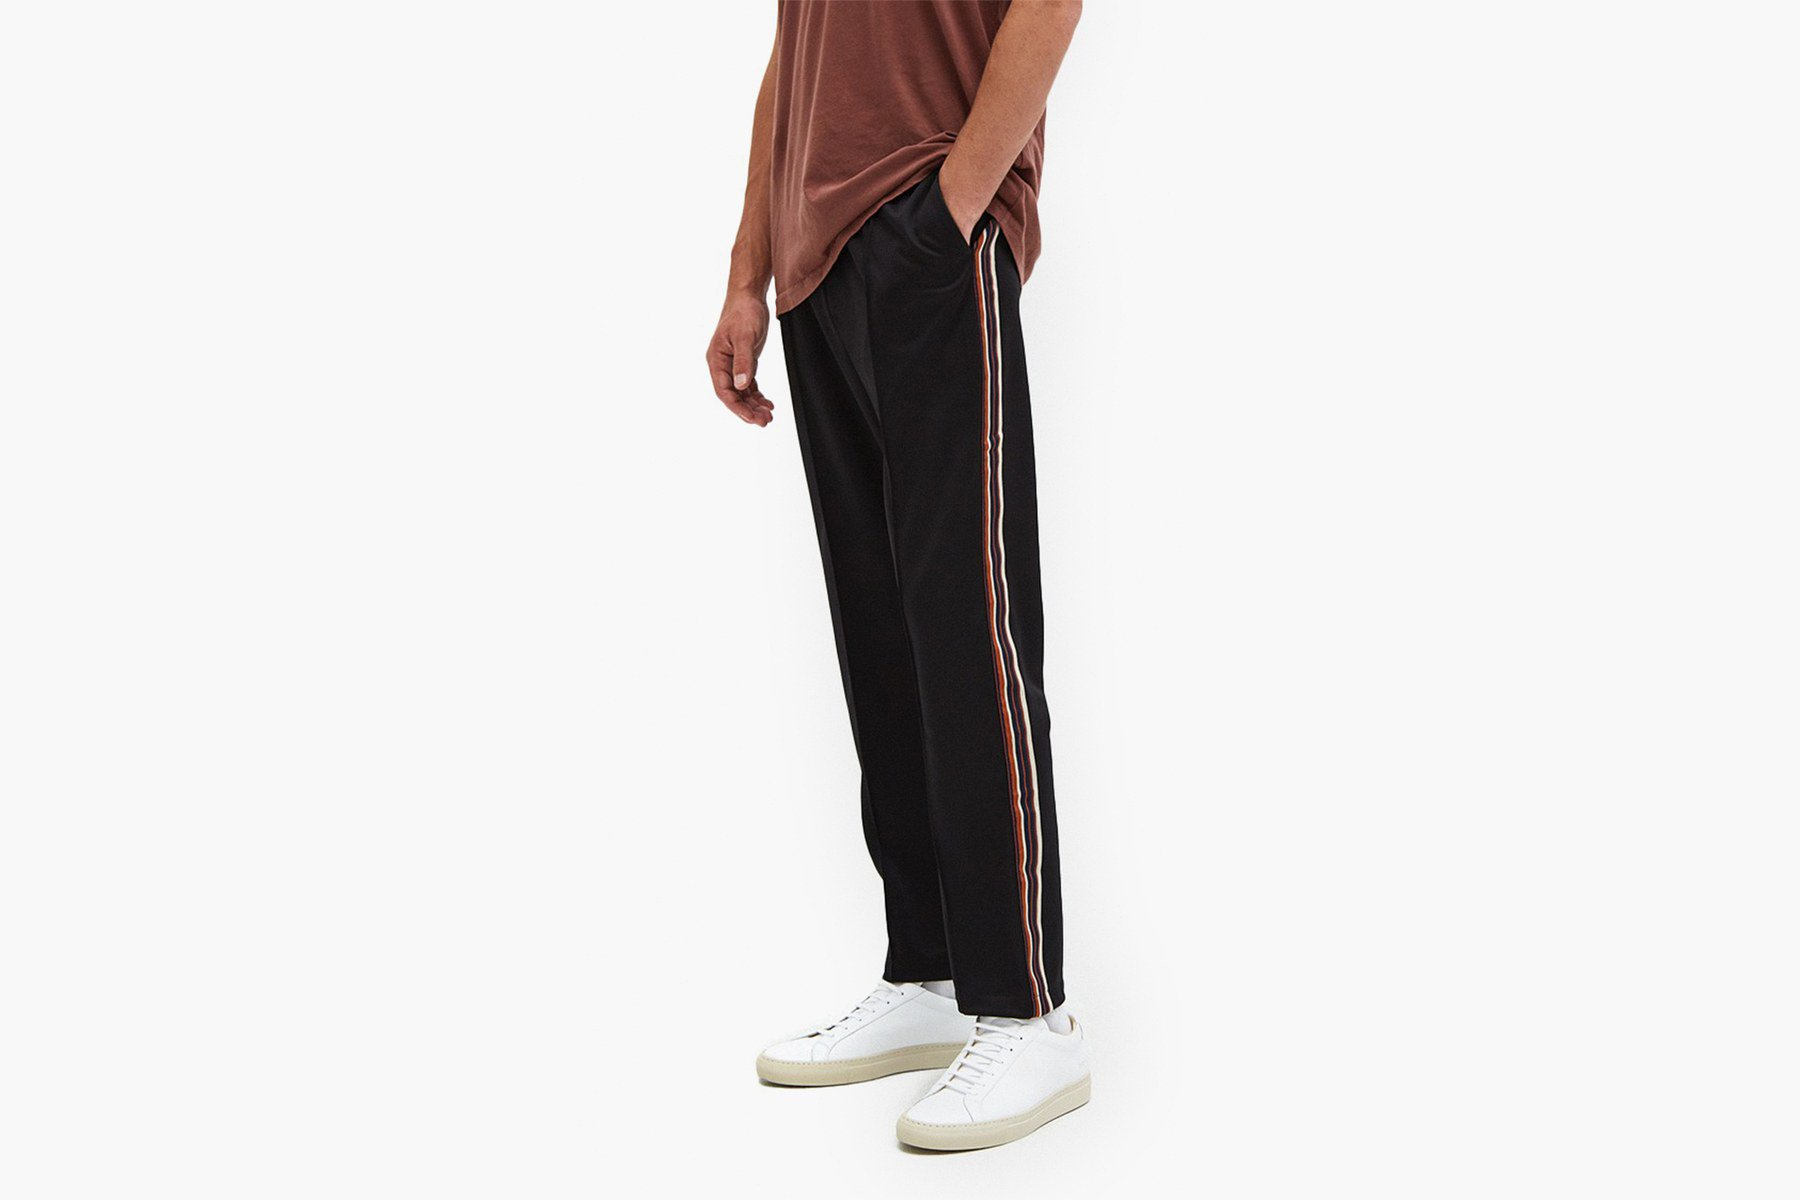 Don't let 2017 pass you by without investing in some very dope track pants https://t.co/DabfLvK1kp https://t.co/XXangsCpv9